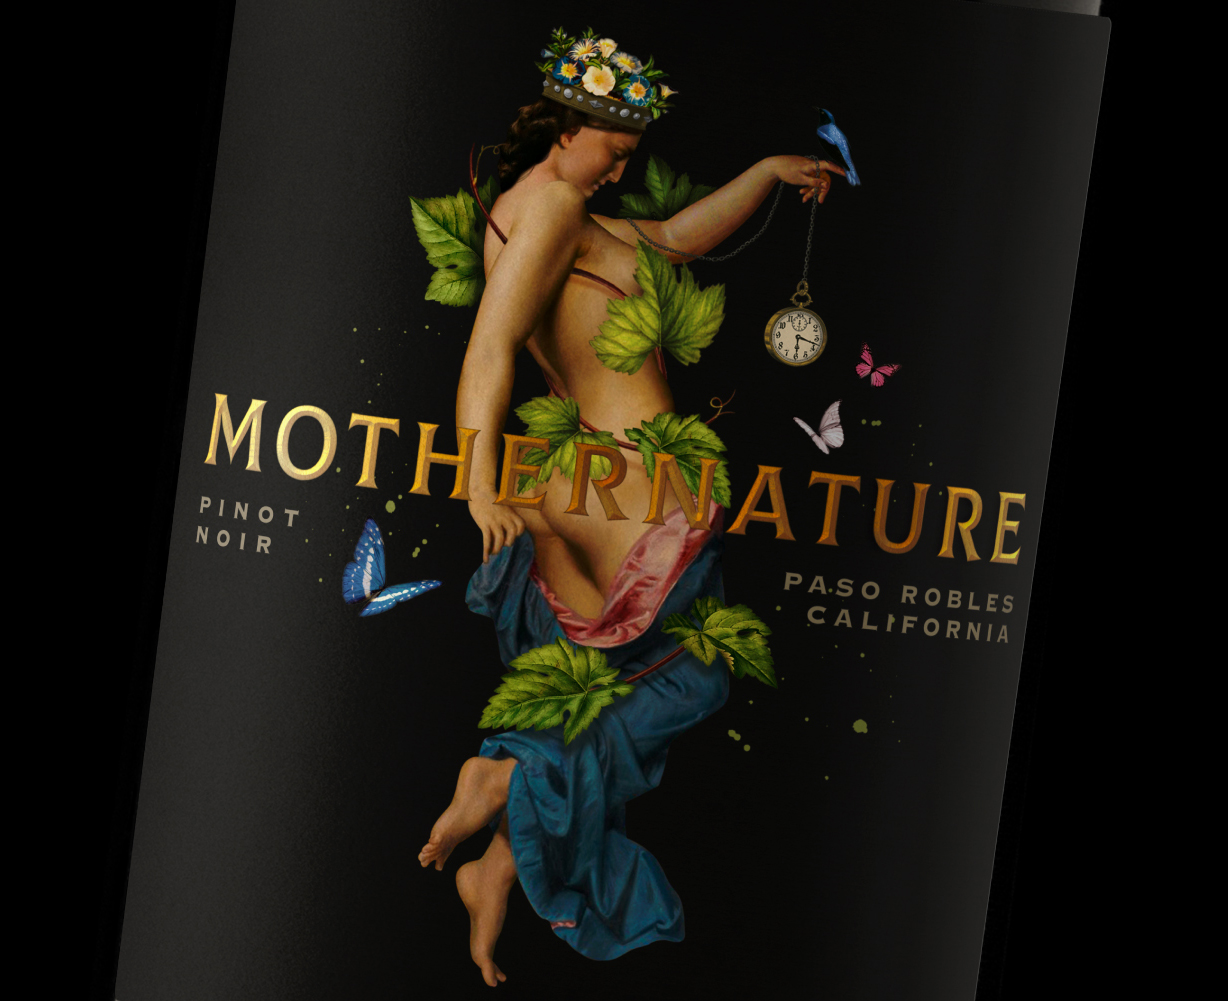 A Tribute to Women and Nature on This American Wine Label